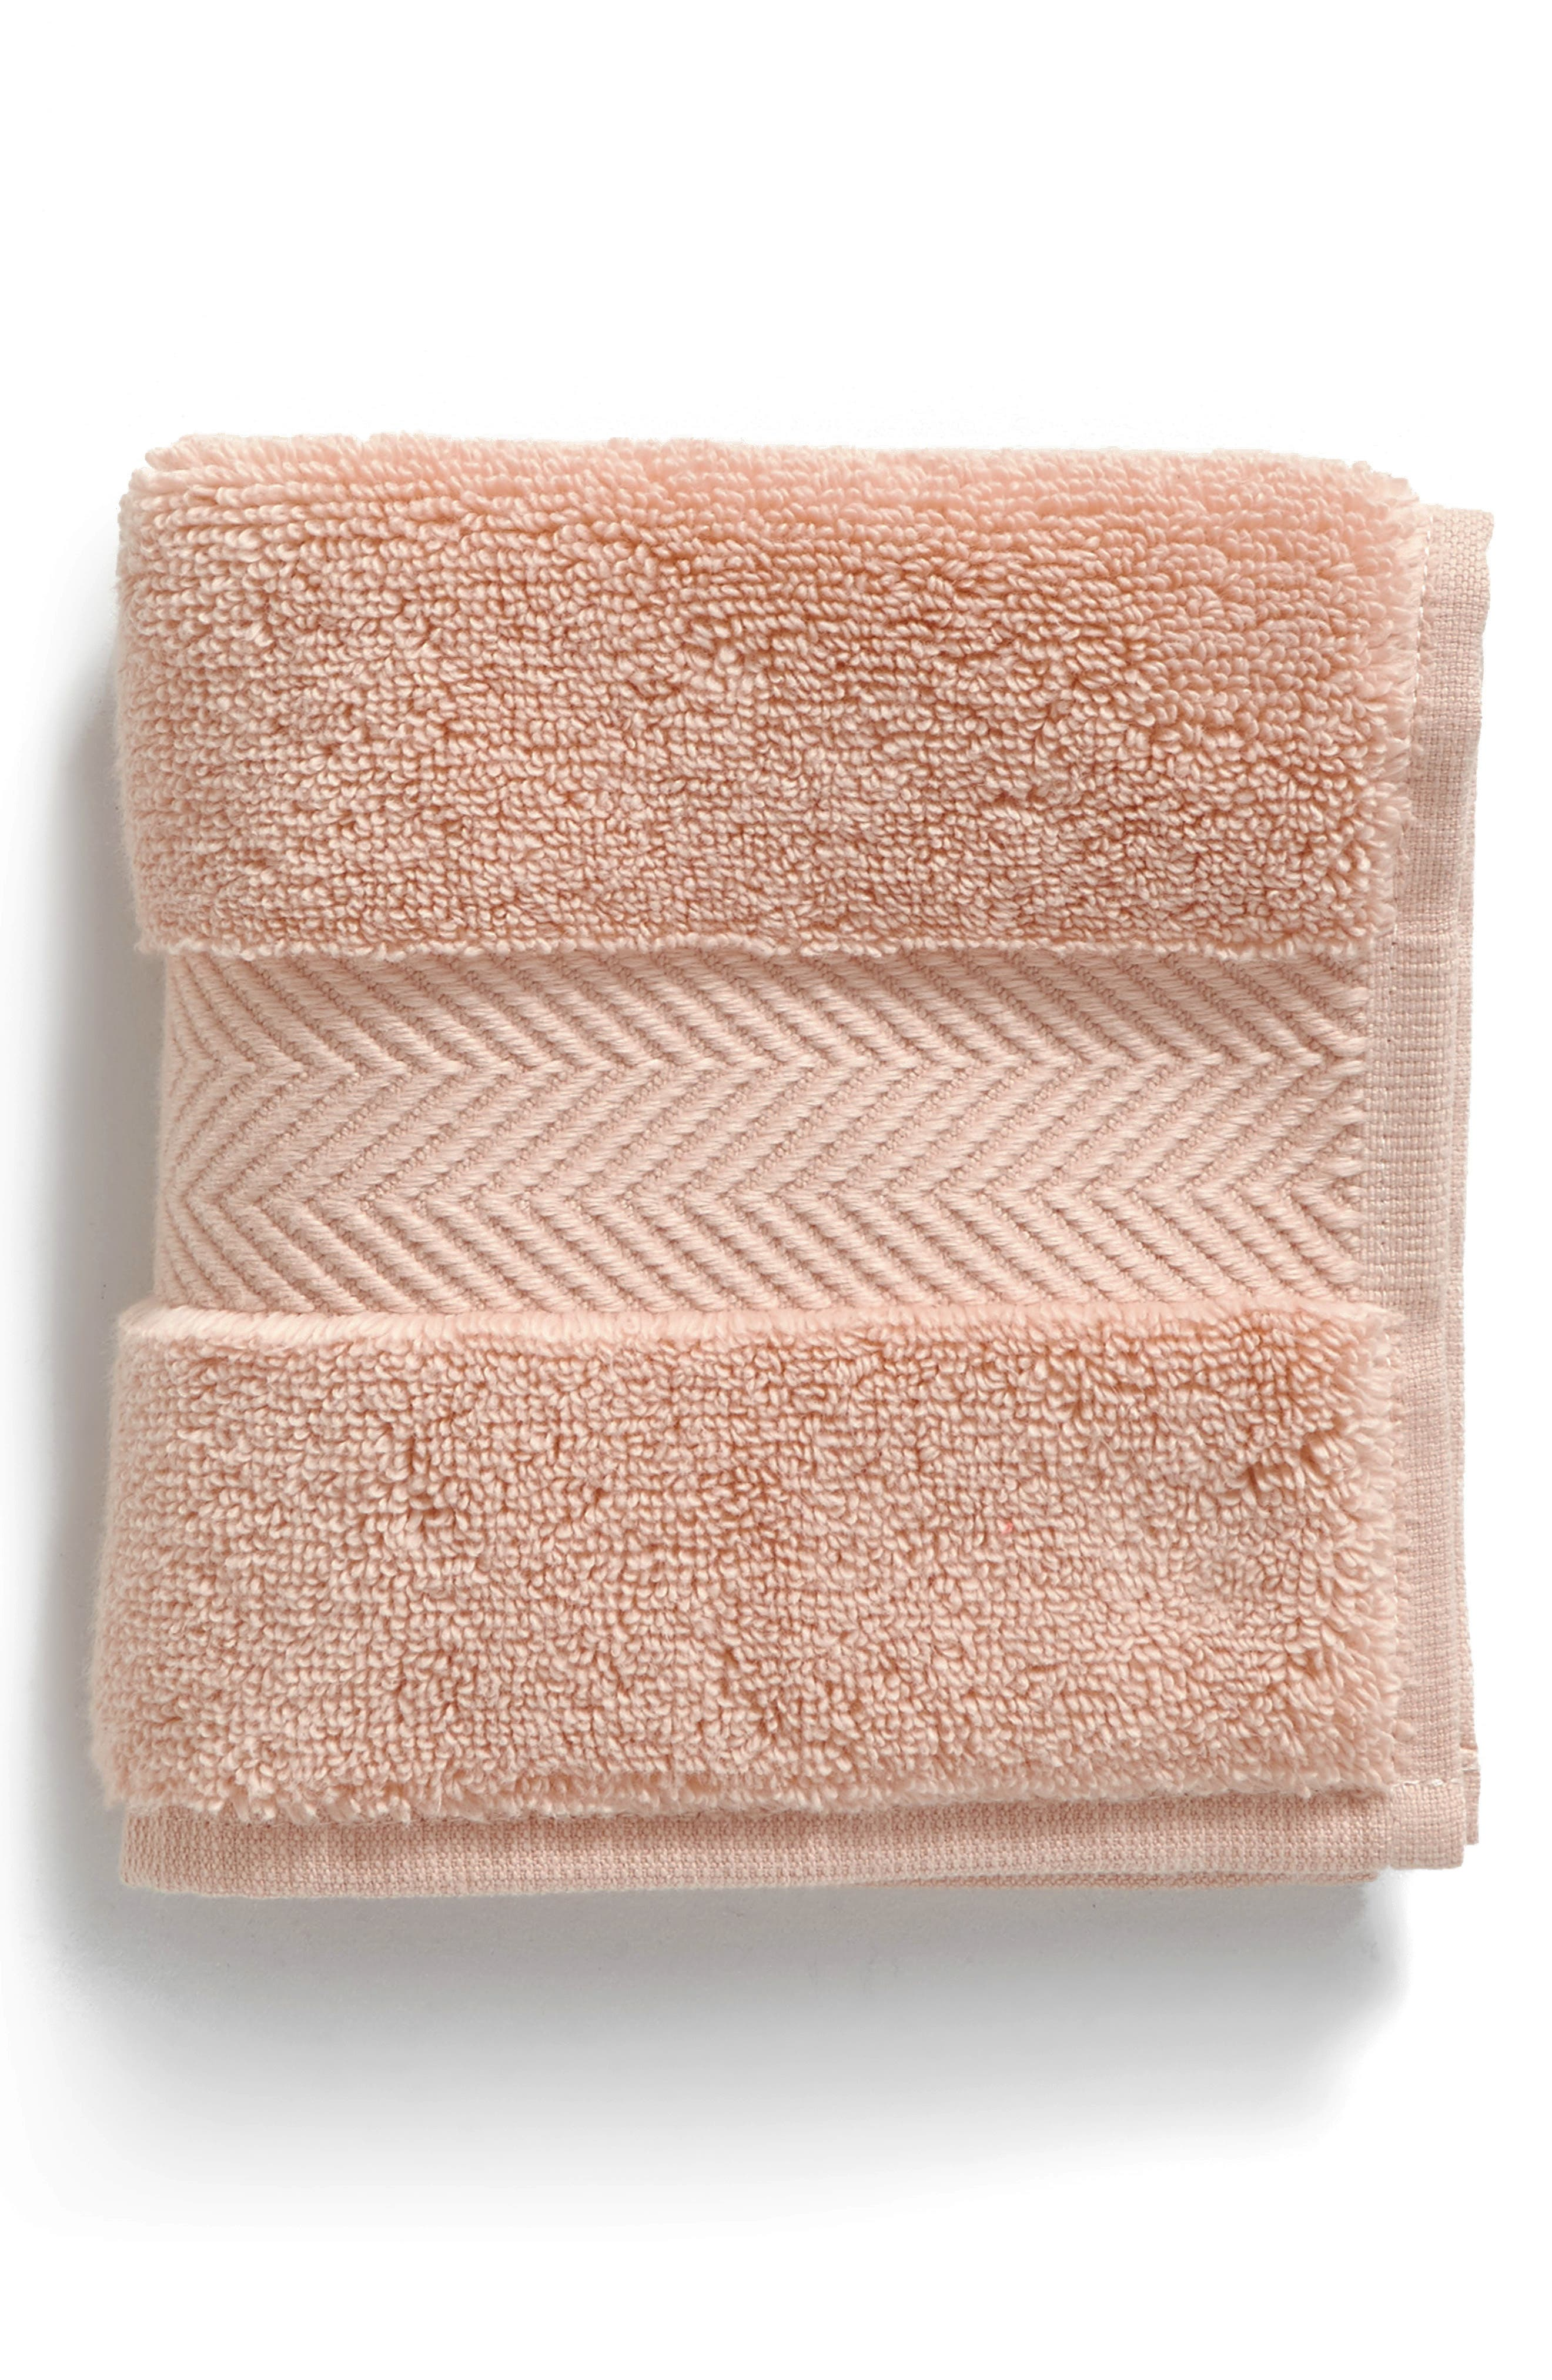 Hydrocotton Washcloth,                             Alternate thumbnail 83, color,